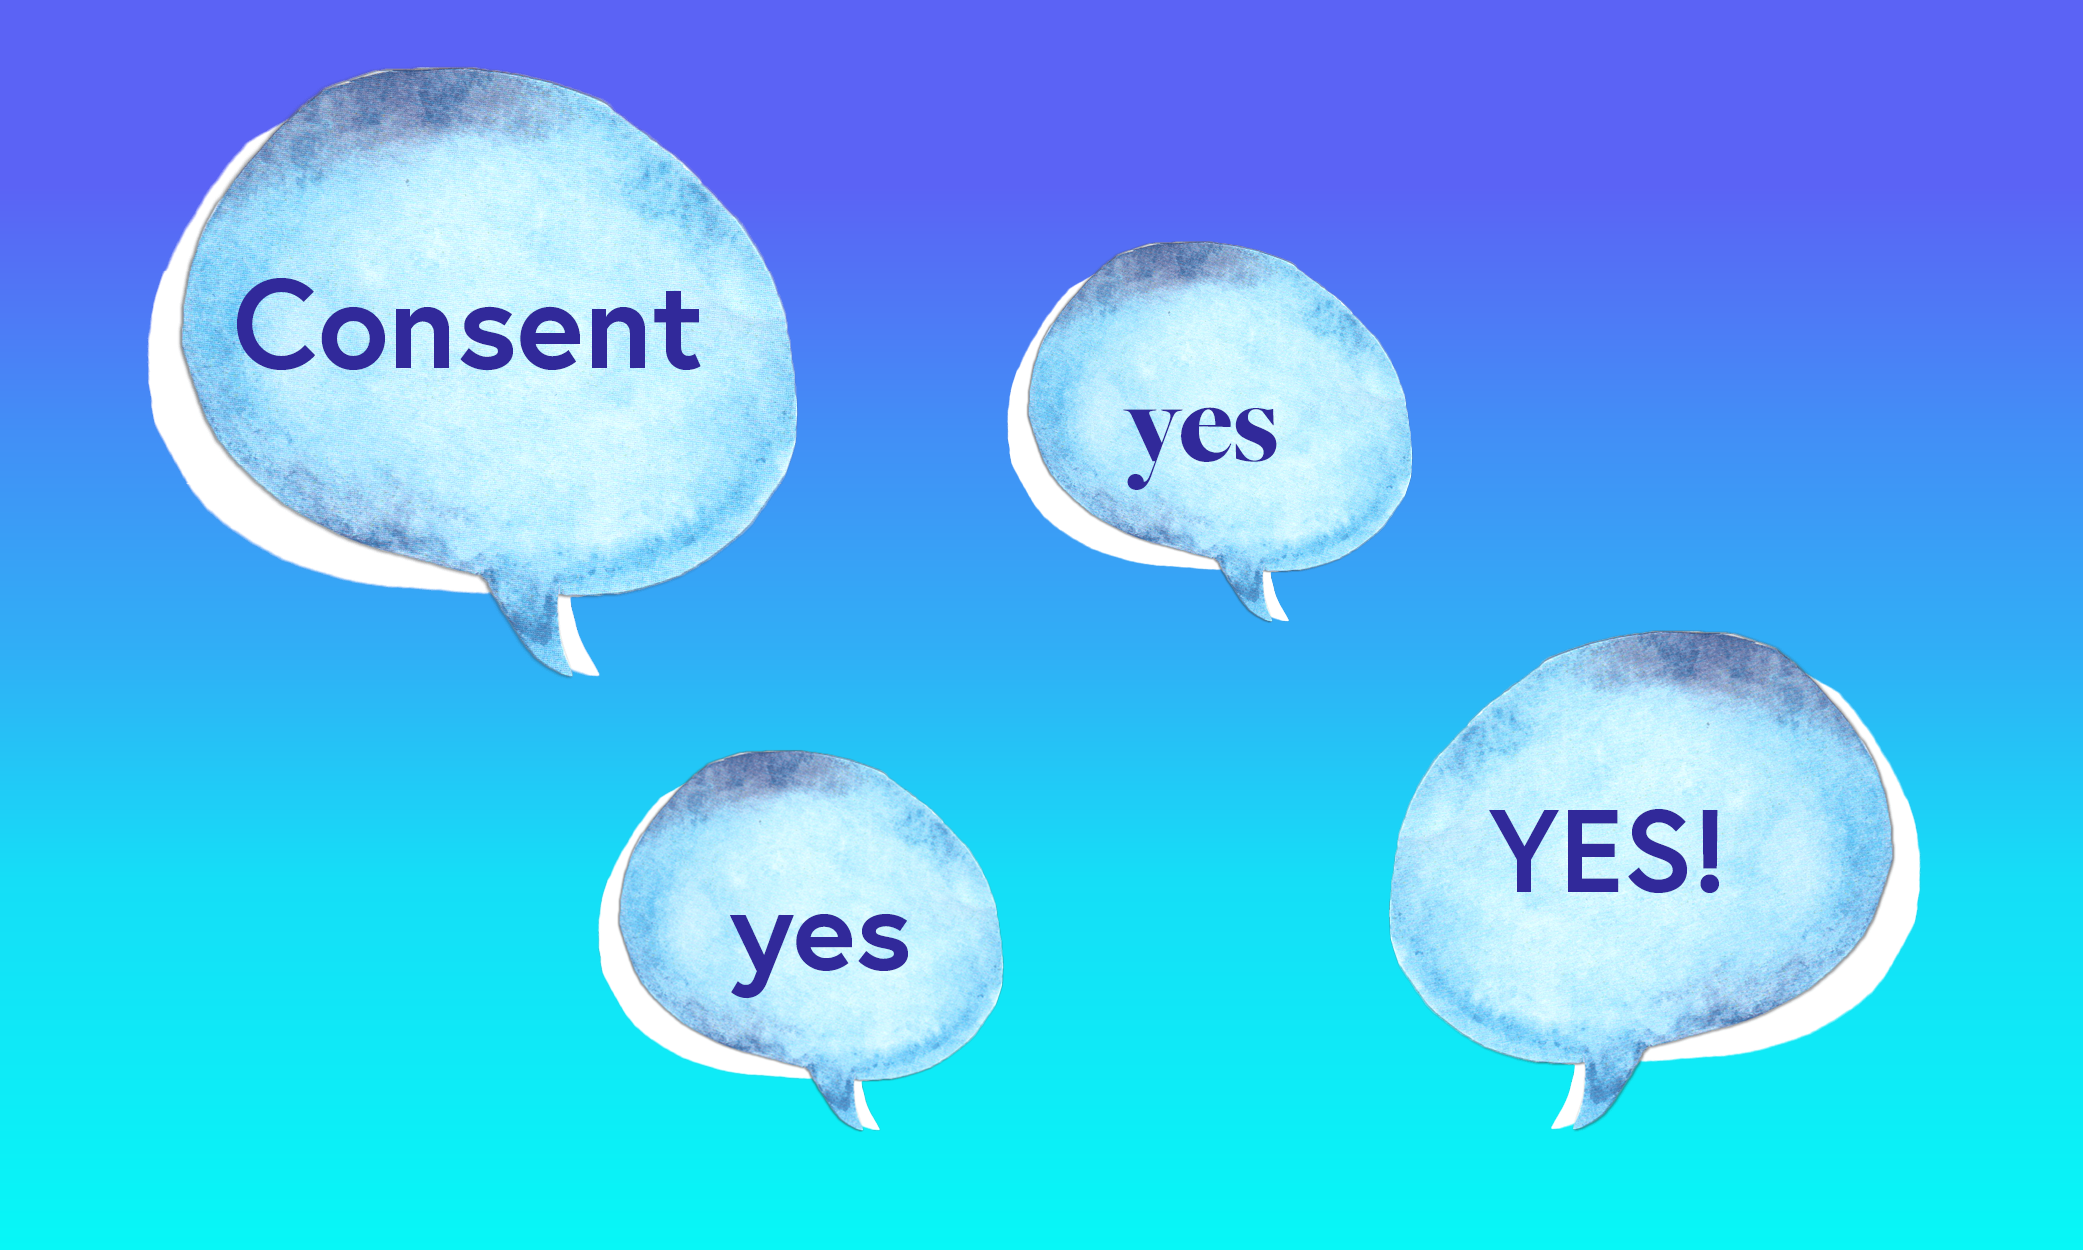 In speech bubbles: consent yes yes yes